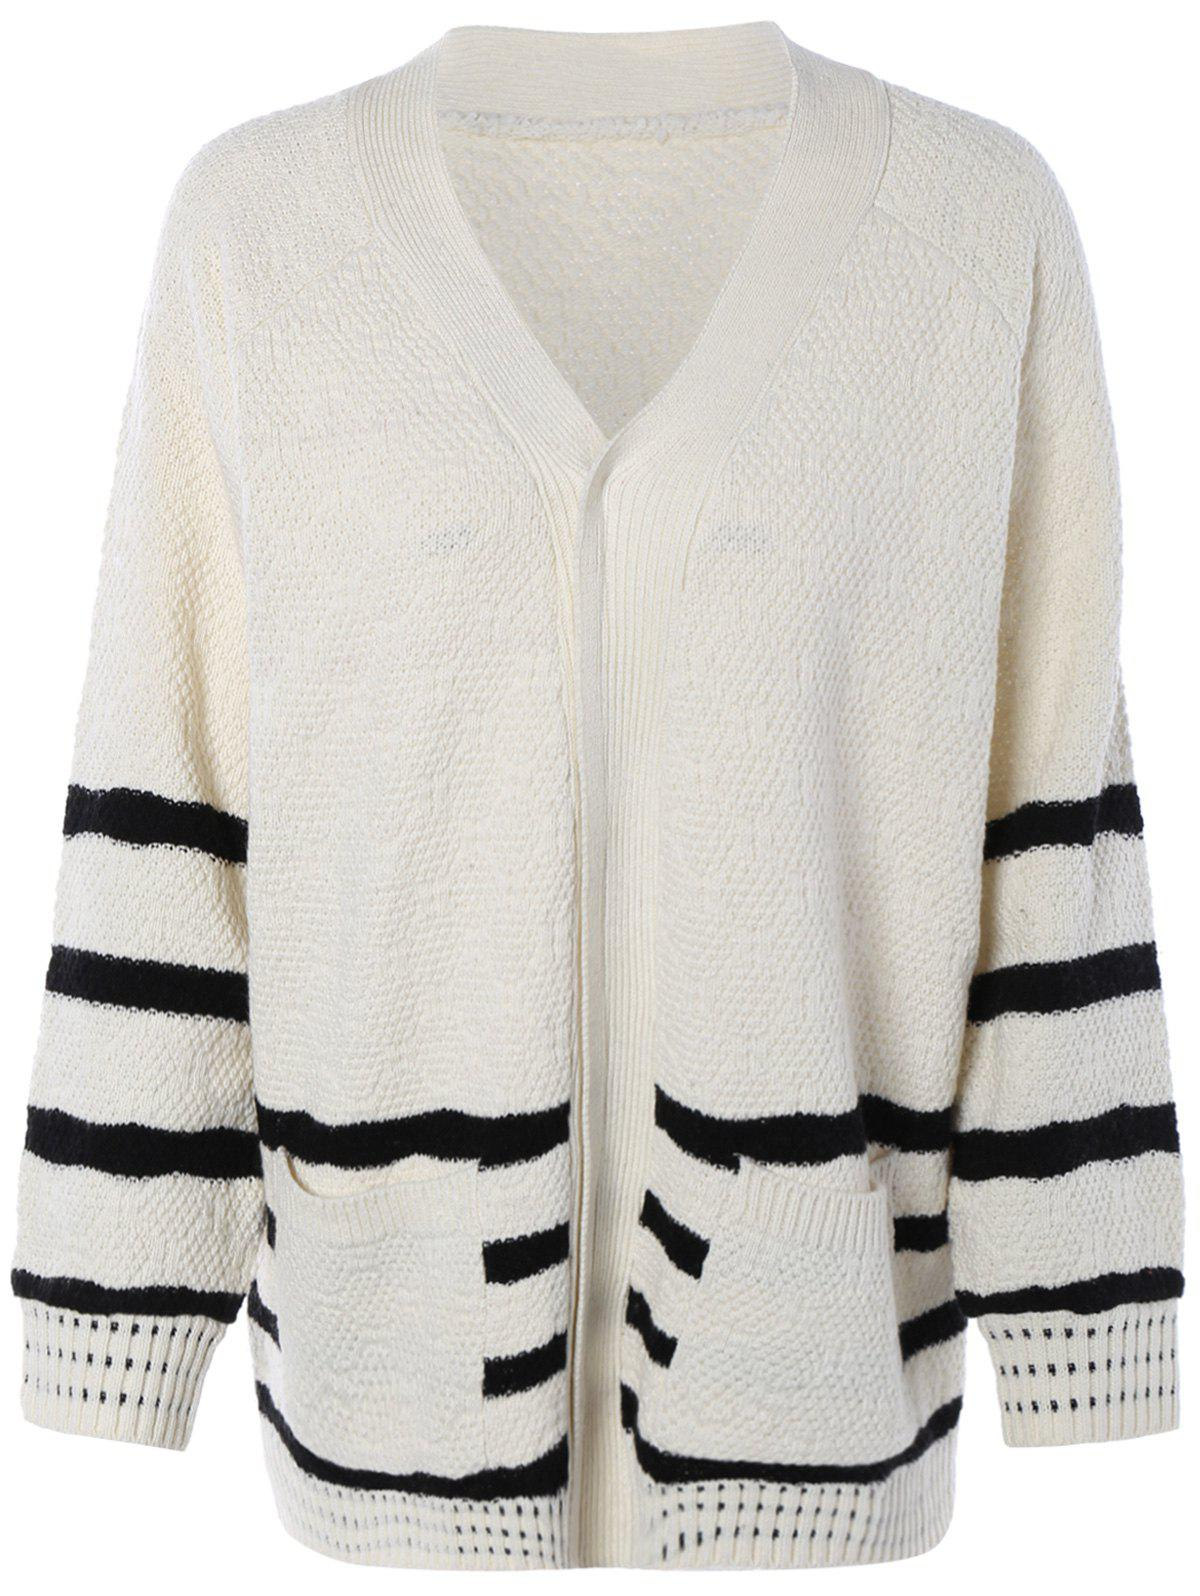 V-Neck Striped Pocket Design Sweater - WHITE ONE SIZE